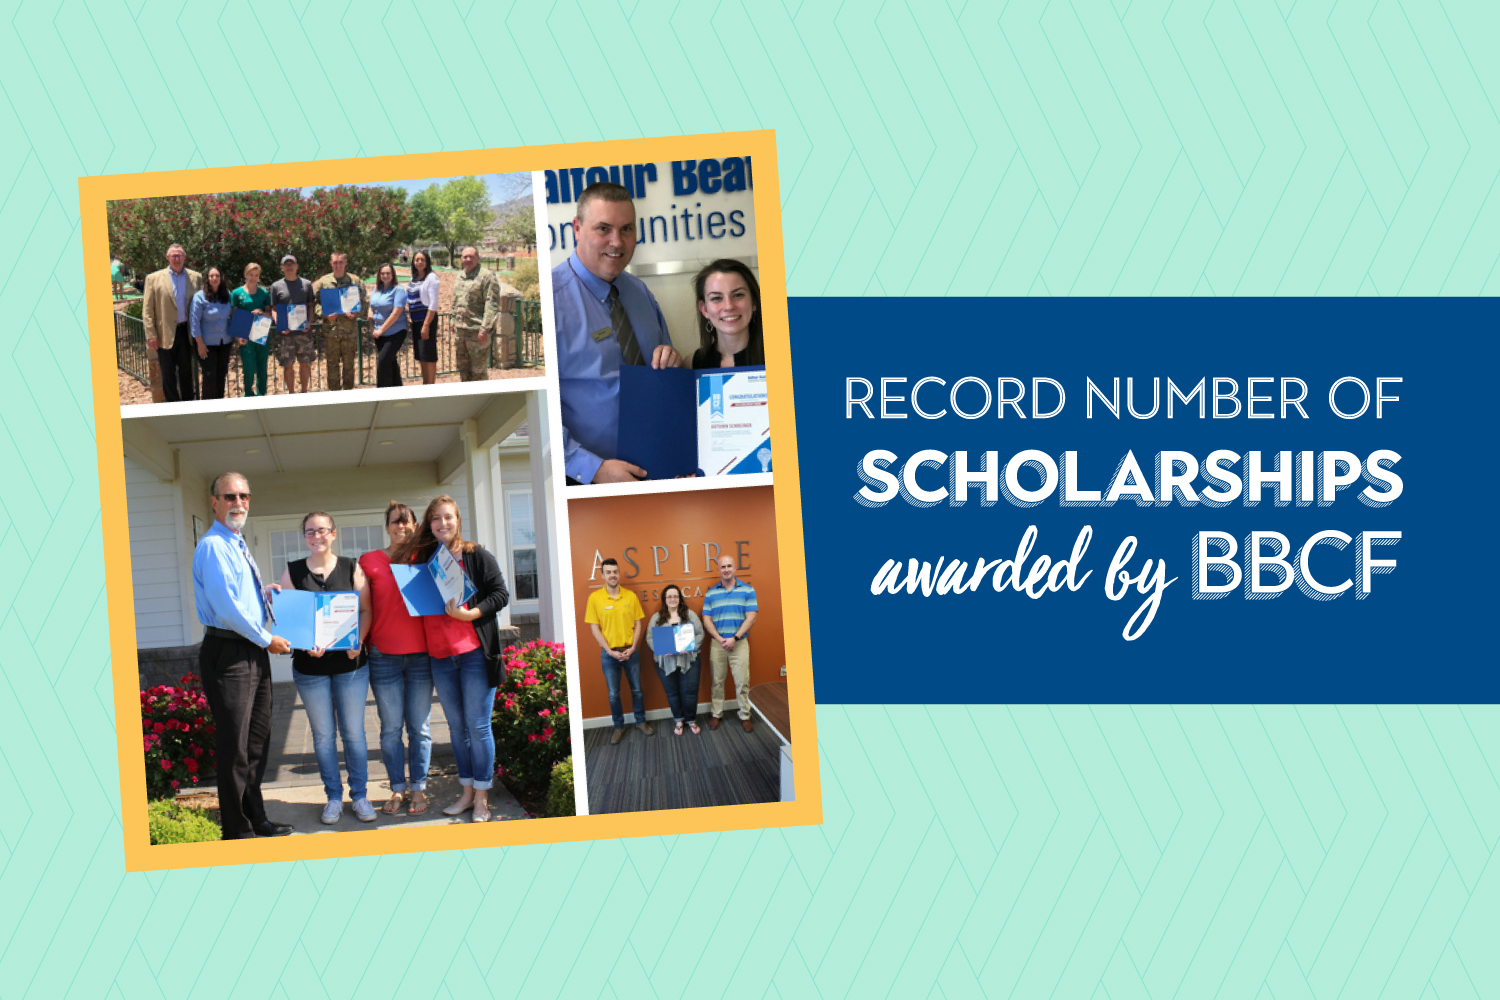 Record number of scholarships awarded by Balfour Beatty Communities Foundation